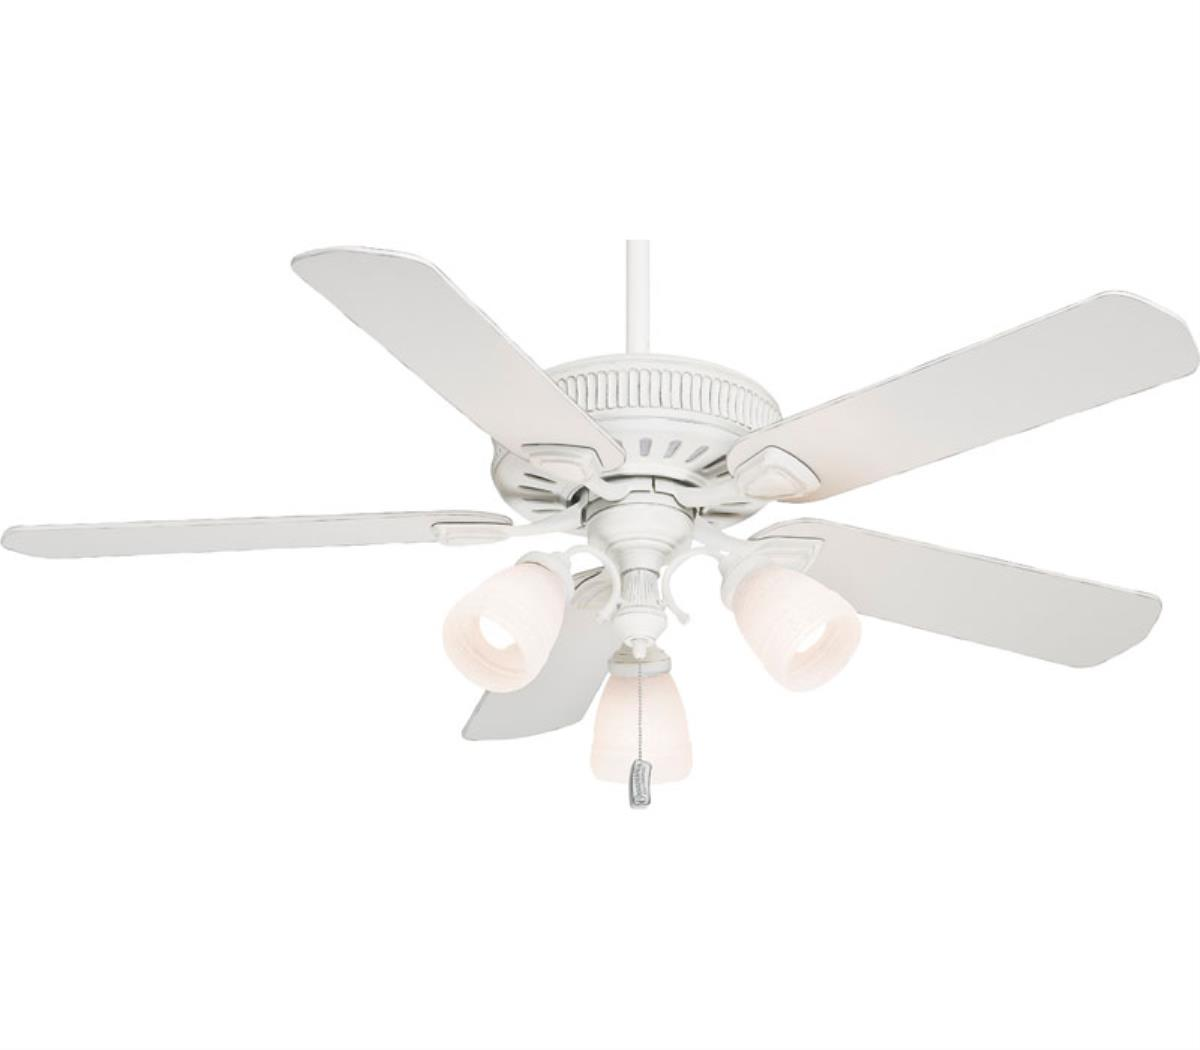 wonderful Casablanca Ceiling Fans in white and five blade slinger with triple lights for chic ceiling decor ideas